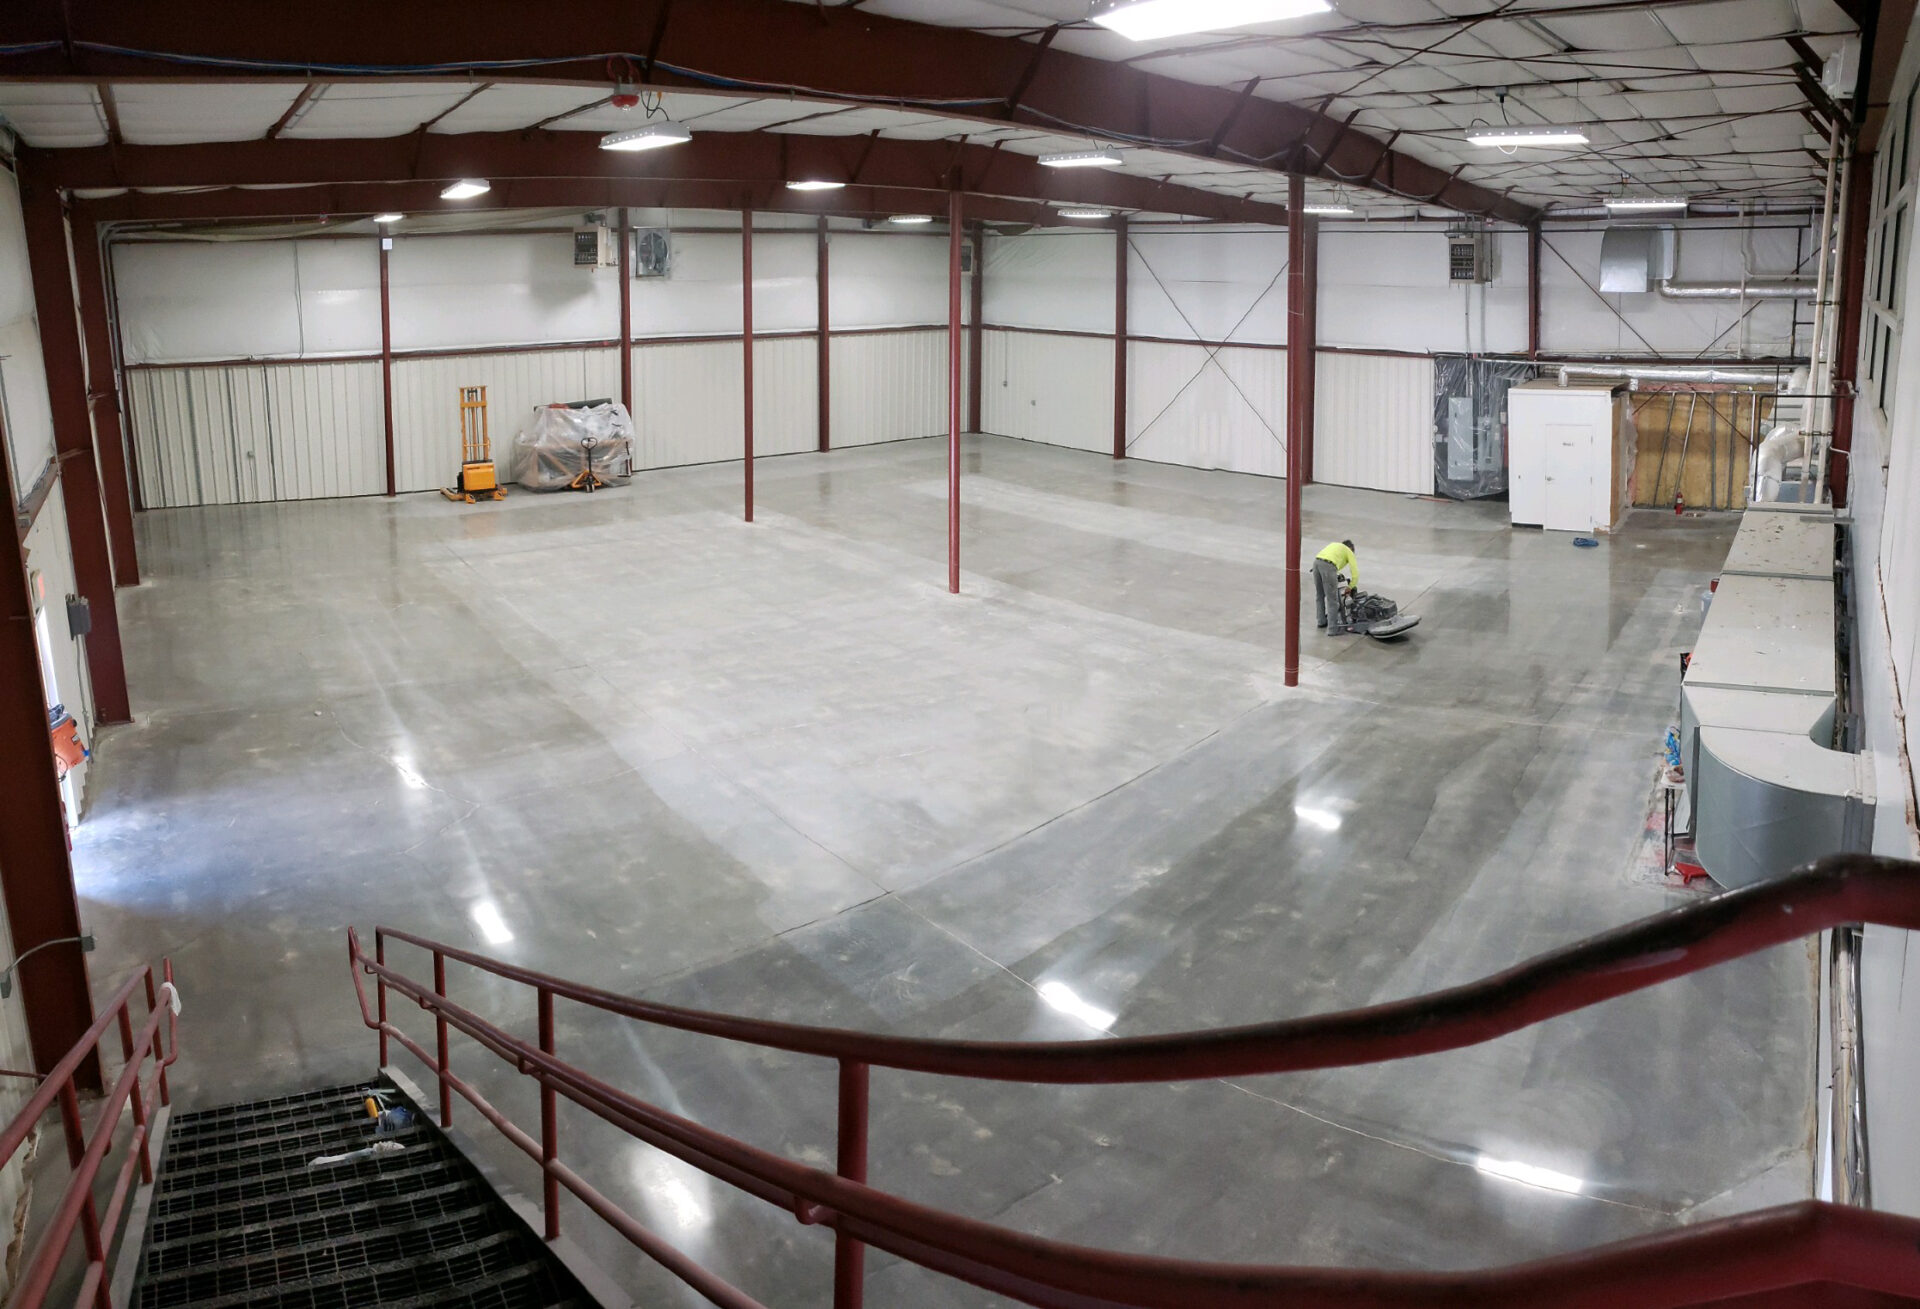 Storage units in Manchester, VT. The entire slab was ground, honed, densified, and polished to a 400 grit finish. The owner asked for the aisles to be shiny and more reflective. The aisles between the individual storage units were guarded and burnished to 800 grit